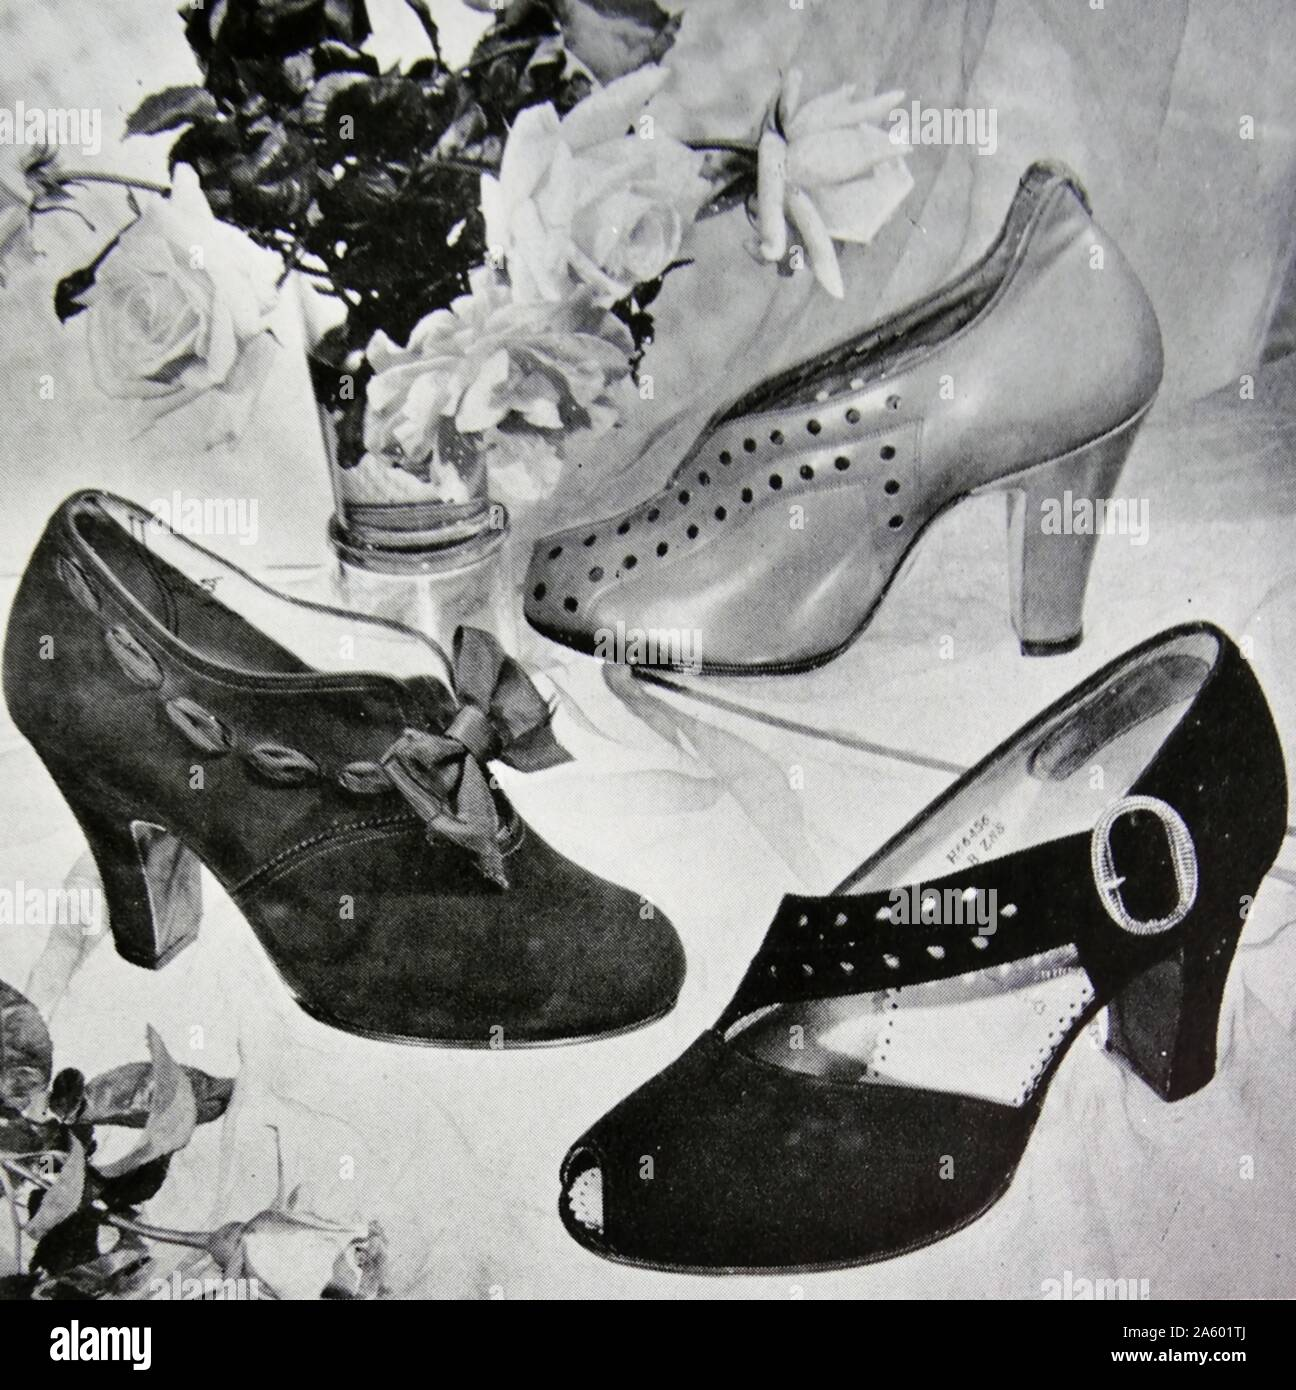 Advert for new elegant shoes by Rayne, a British manufacturer known for high-end and couture shoes. Founded in 1899 as a theatrical costumier, it diversified into fashion shoes in the 1920s. Stock Photo